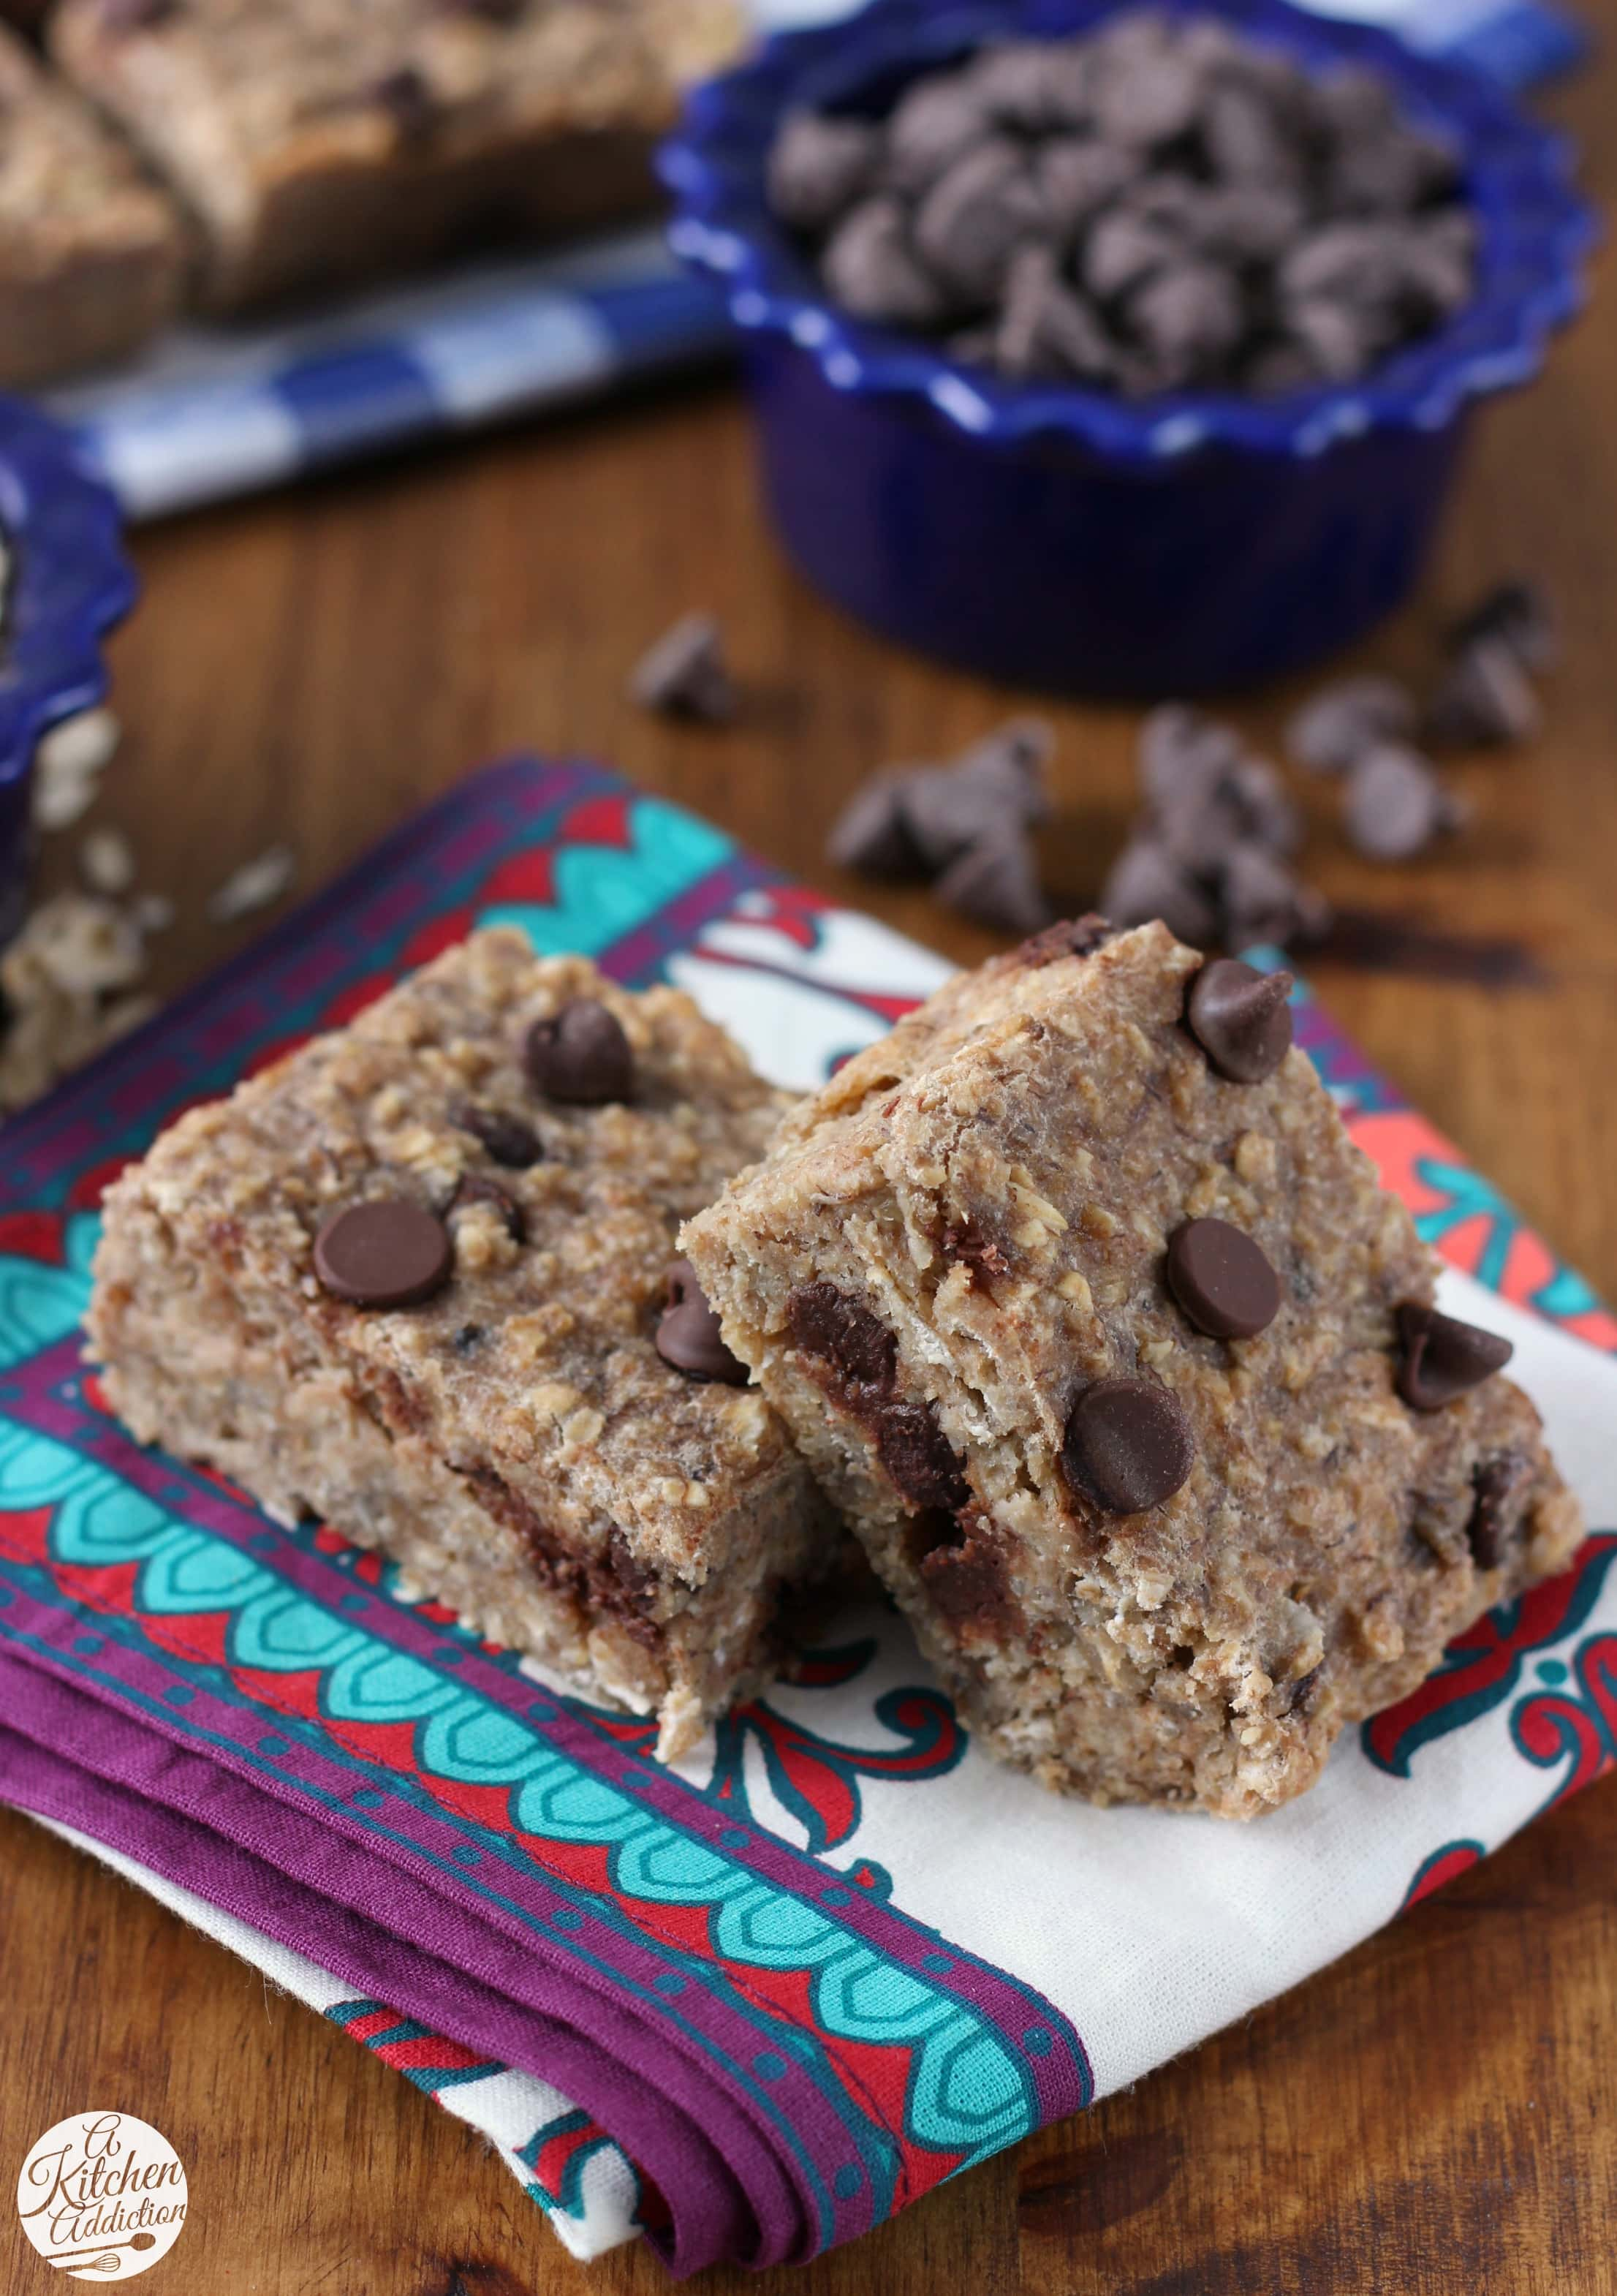 Chocolate Chip Banana Breakfast Bars Recipe from A Kitchen Addiction